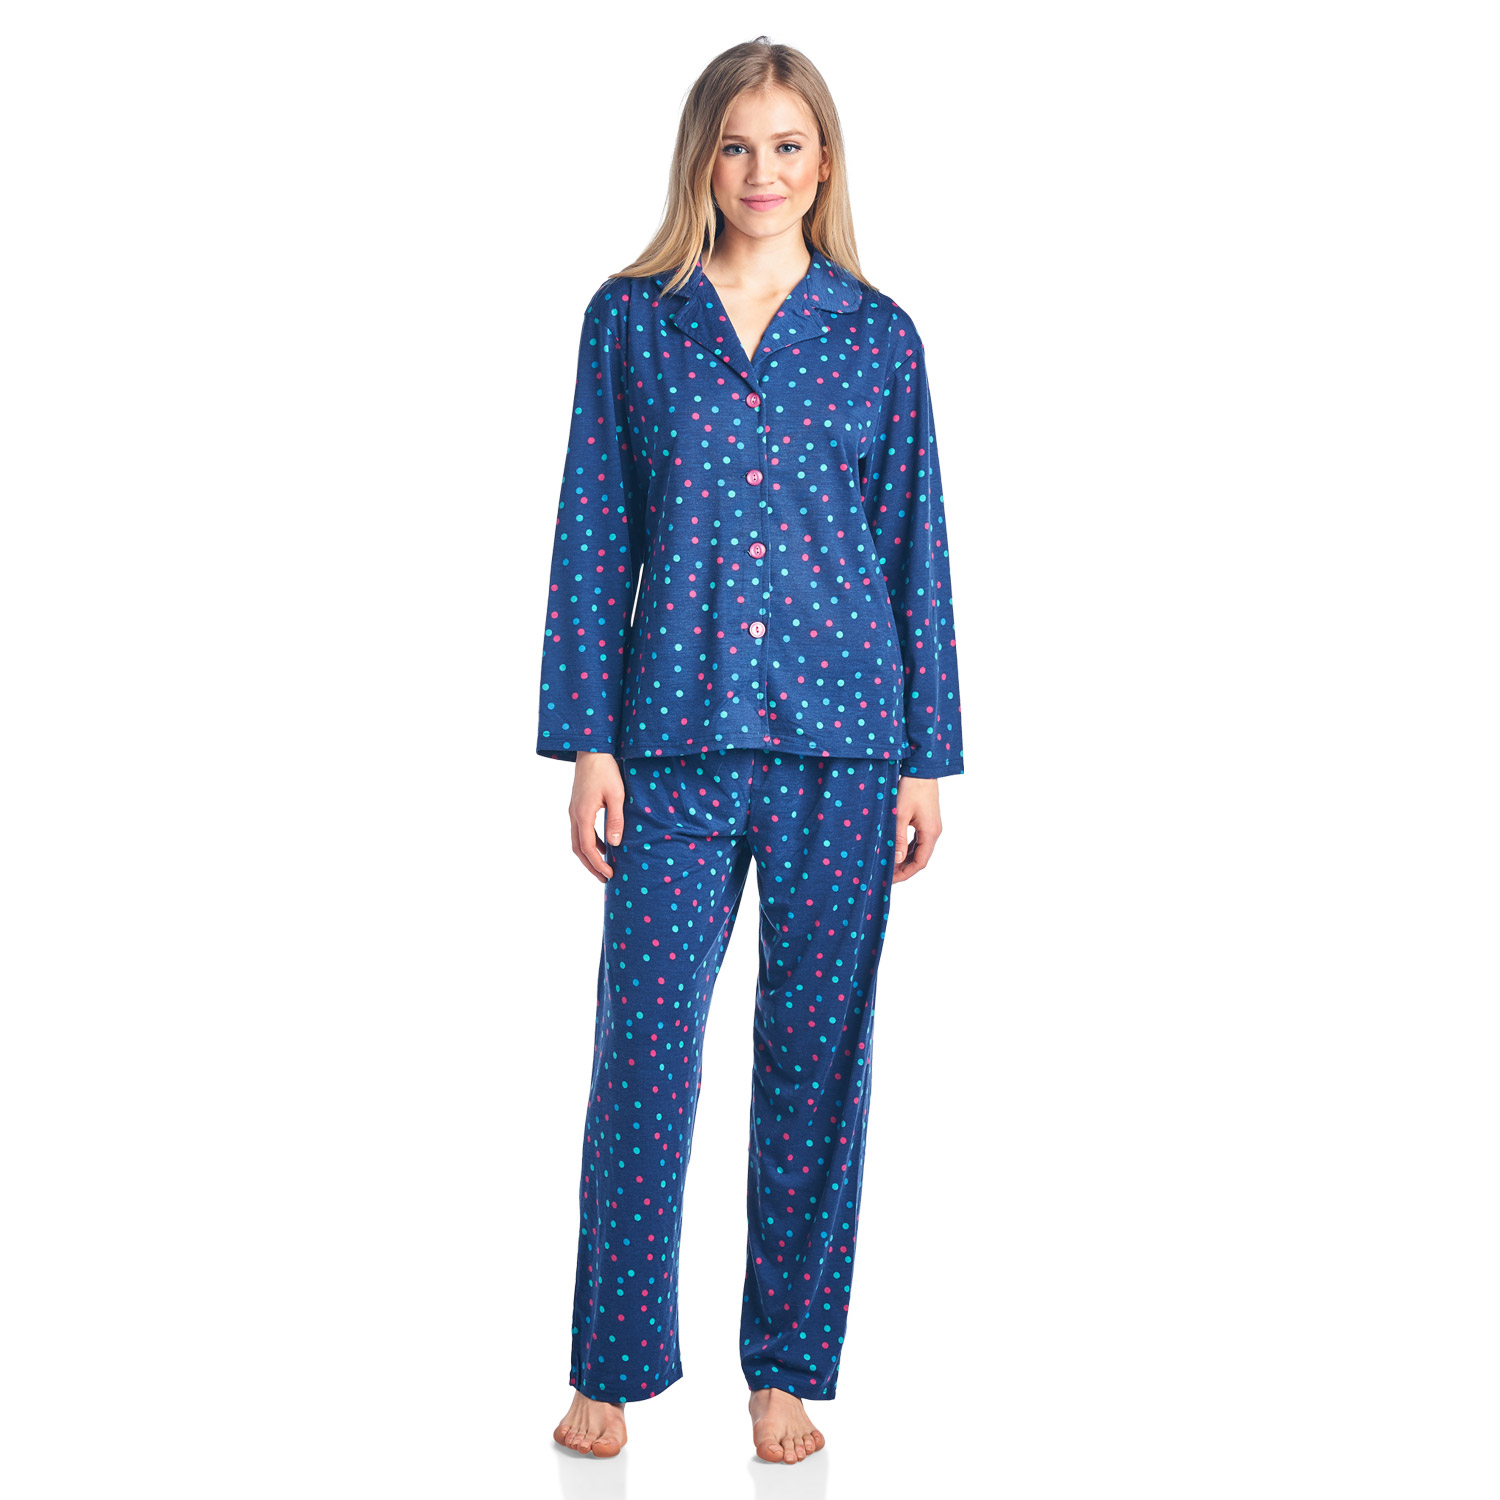 Finally, the same high quality you have come to expect from BedHead pajamas, is available in BedHead slippers. So complete your bedroom ensemble with your favorite robes, chemise, nightshirts, slippers and pajamas from BedHead.